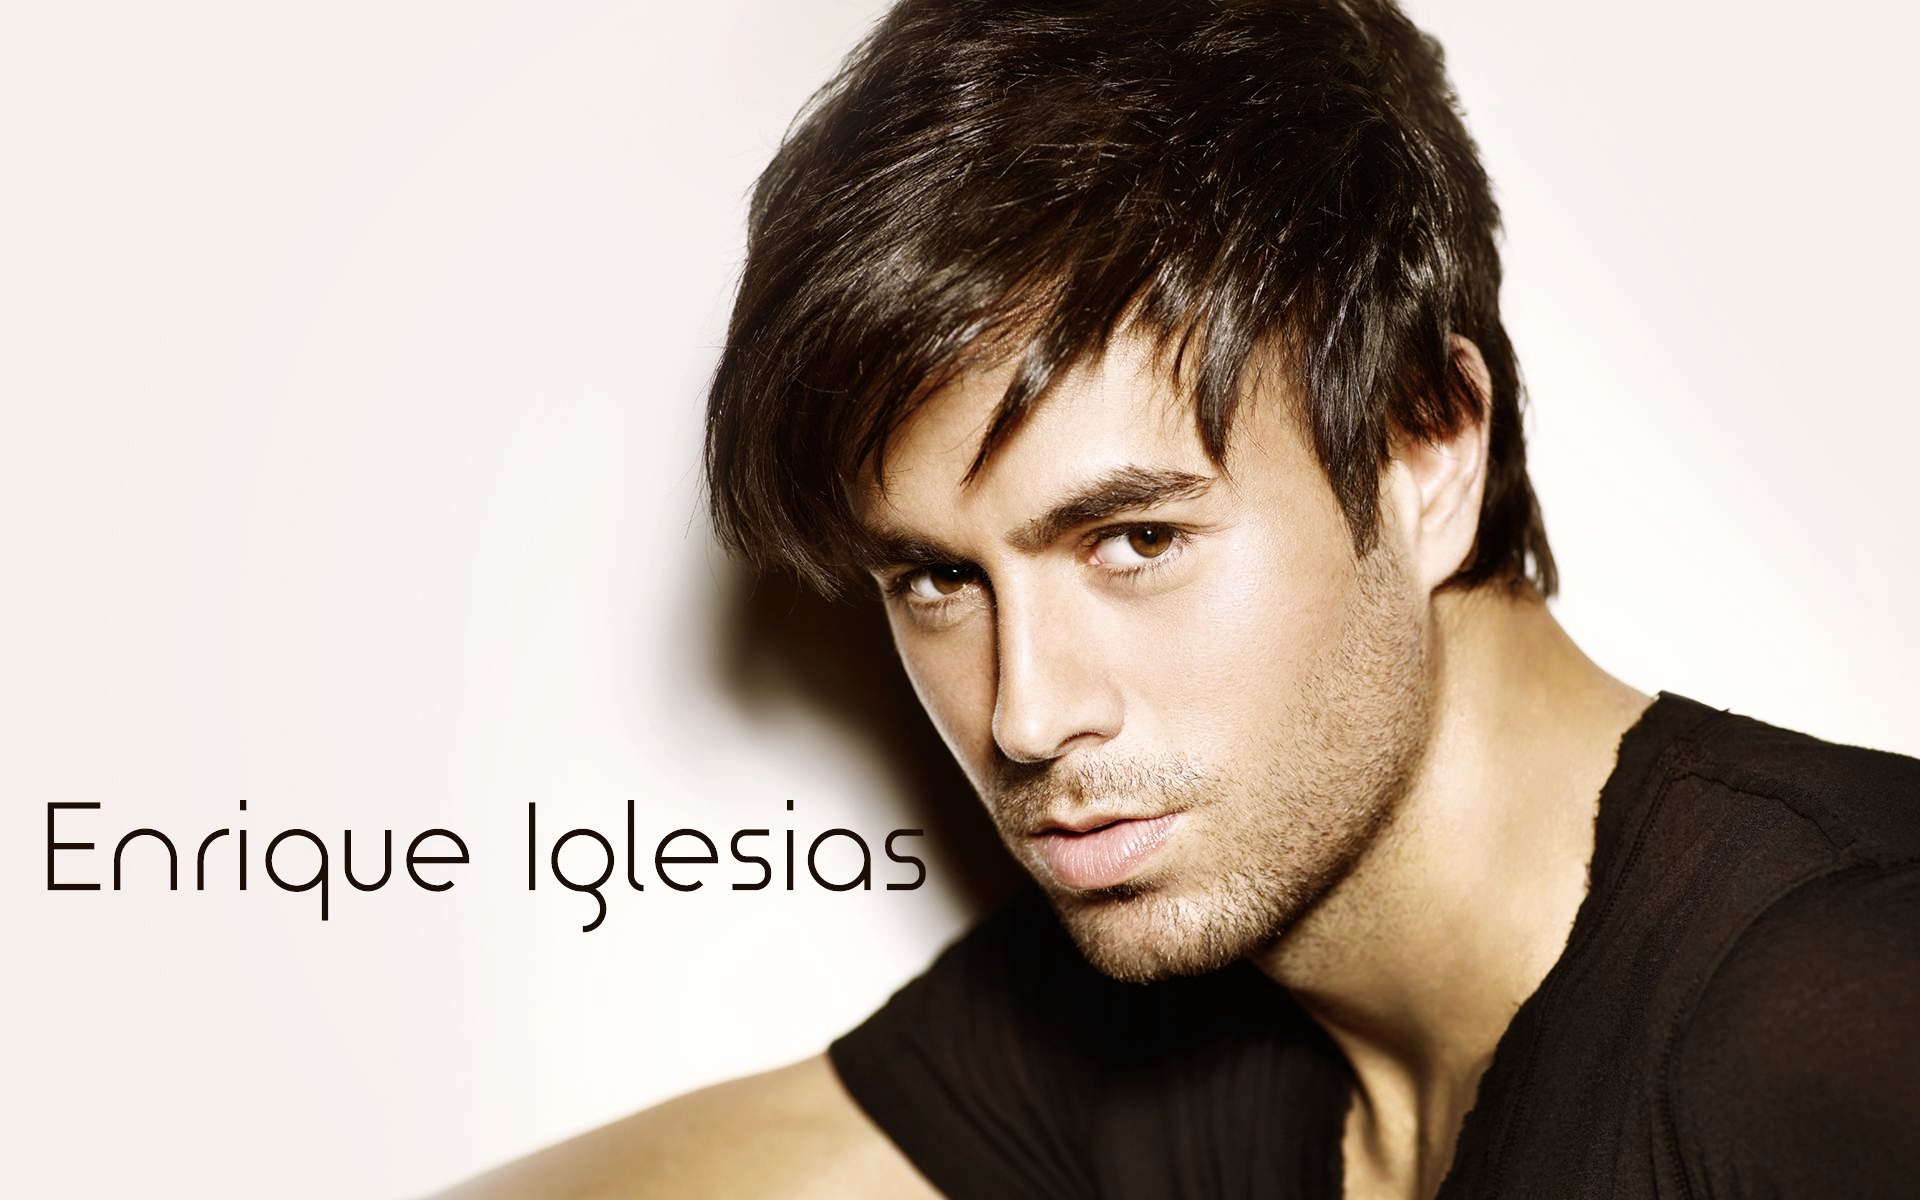 enrique iglesias wallpapers | hd wallpapers of debonair singing